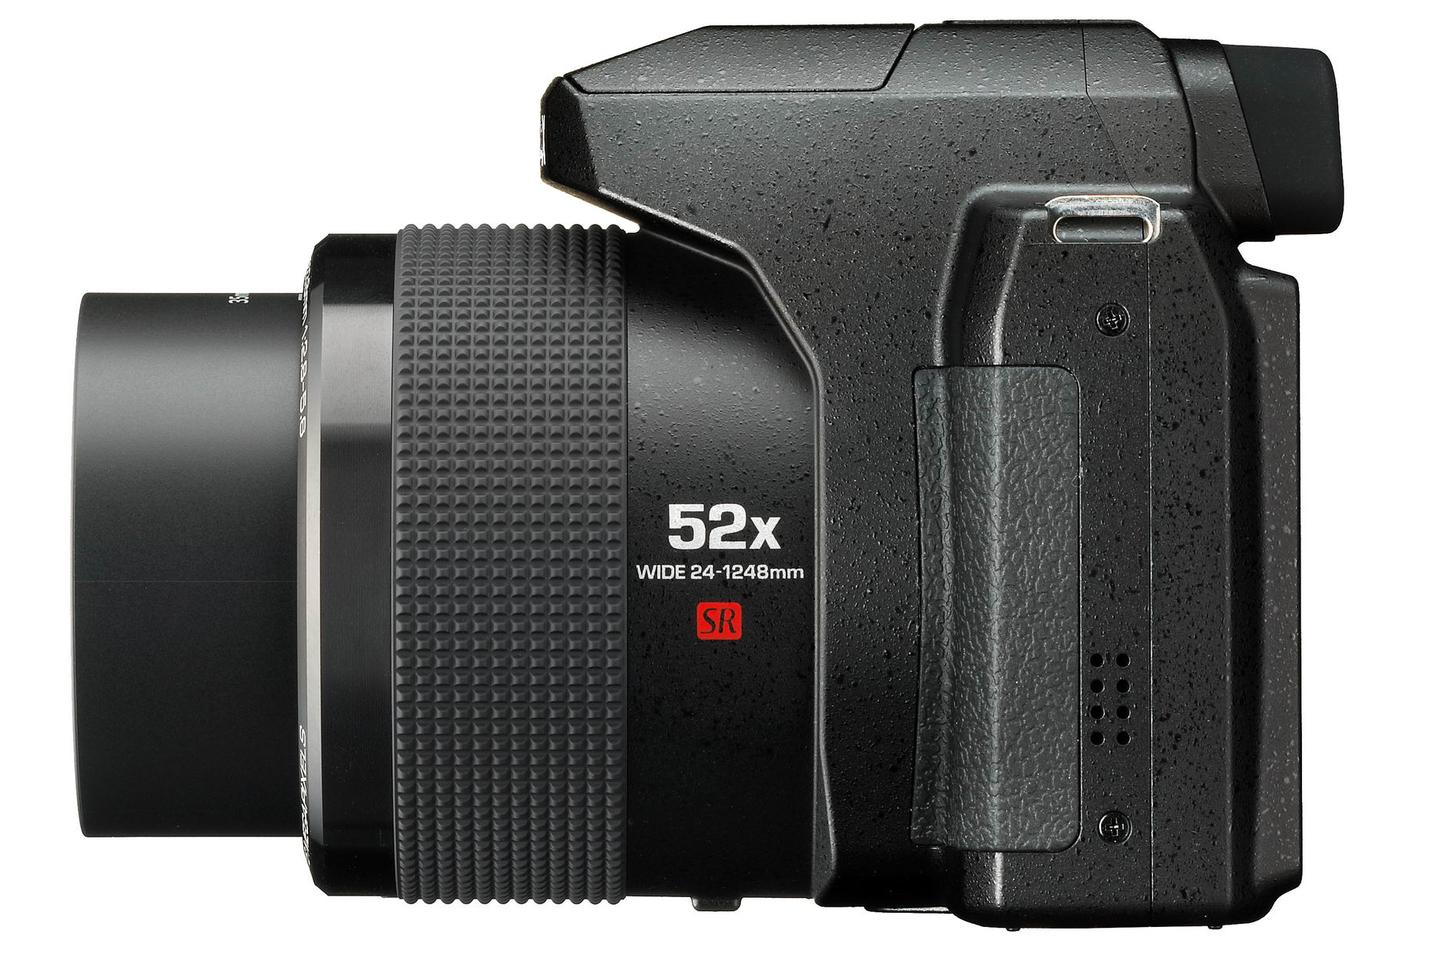 The lens on the Pentax XG-1 gives a 24-1,248-mm equivalent focal length range